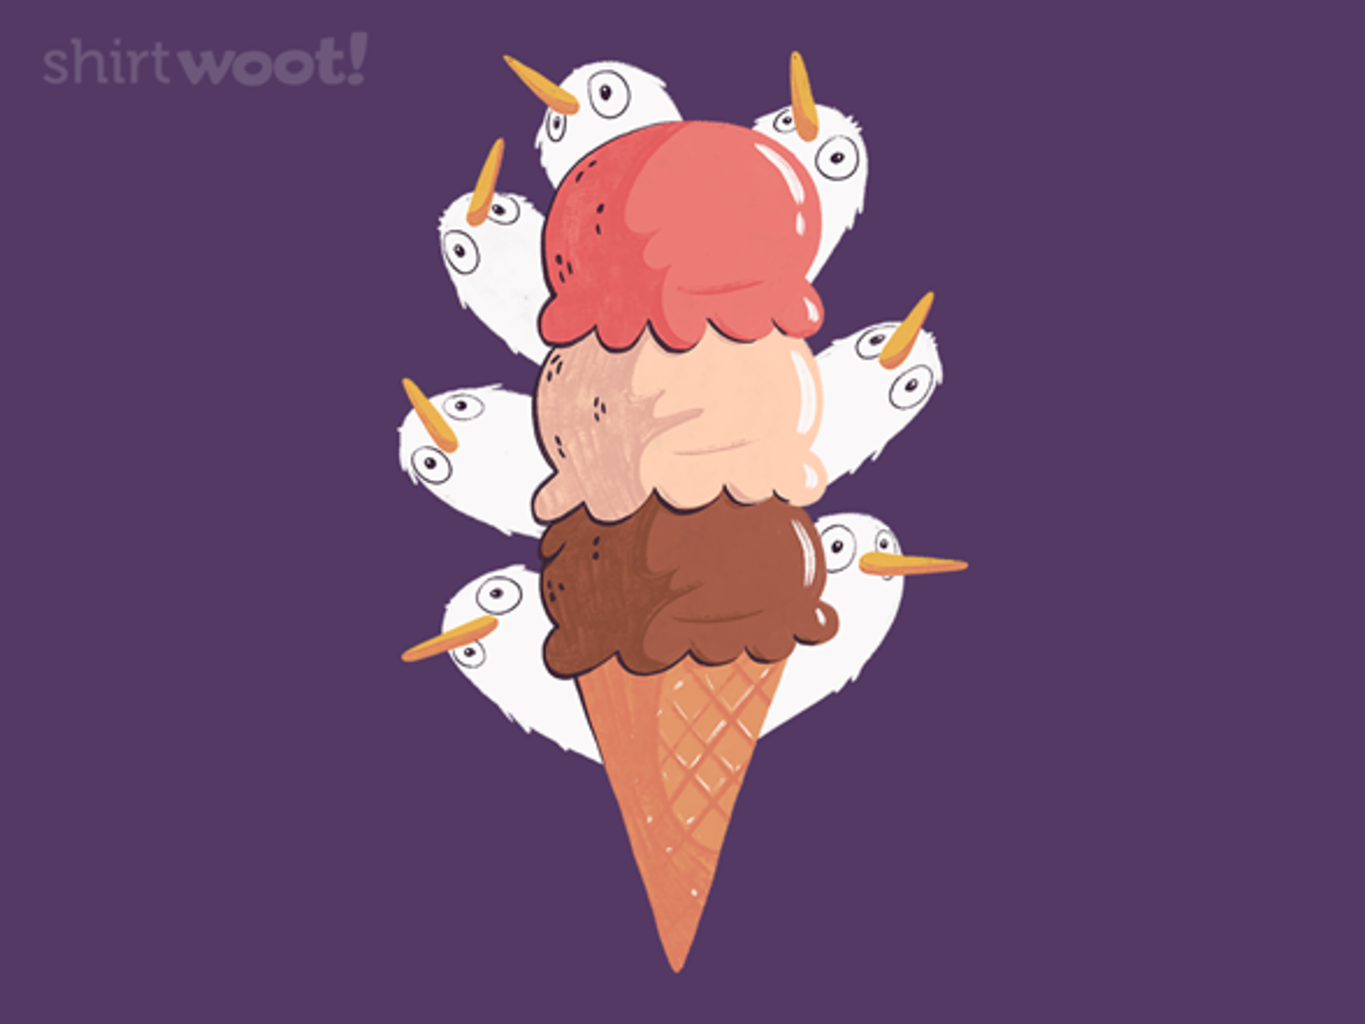 Woot!: I See Ice Cream! - $15.00 + Free shipping